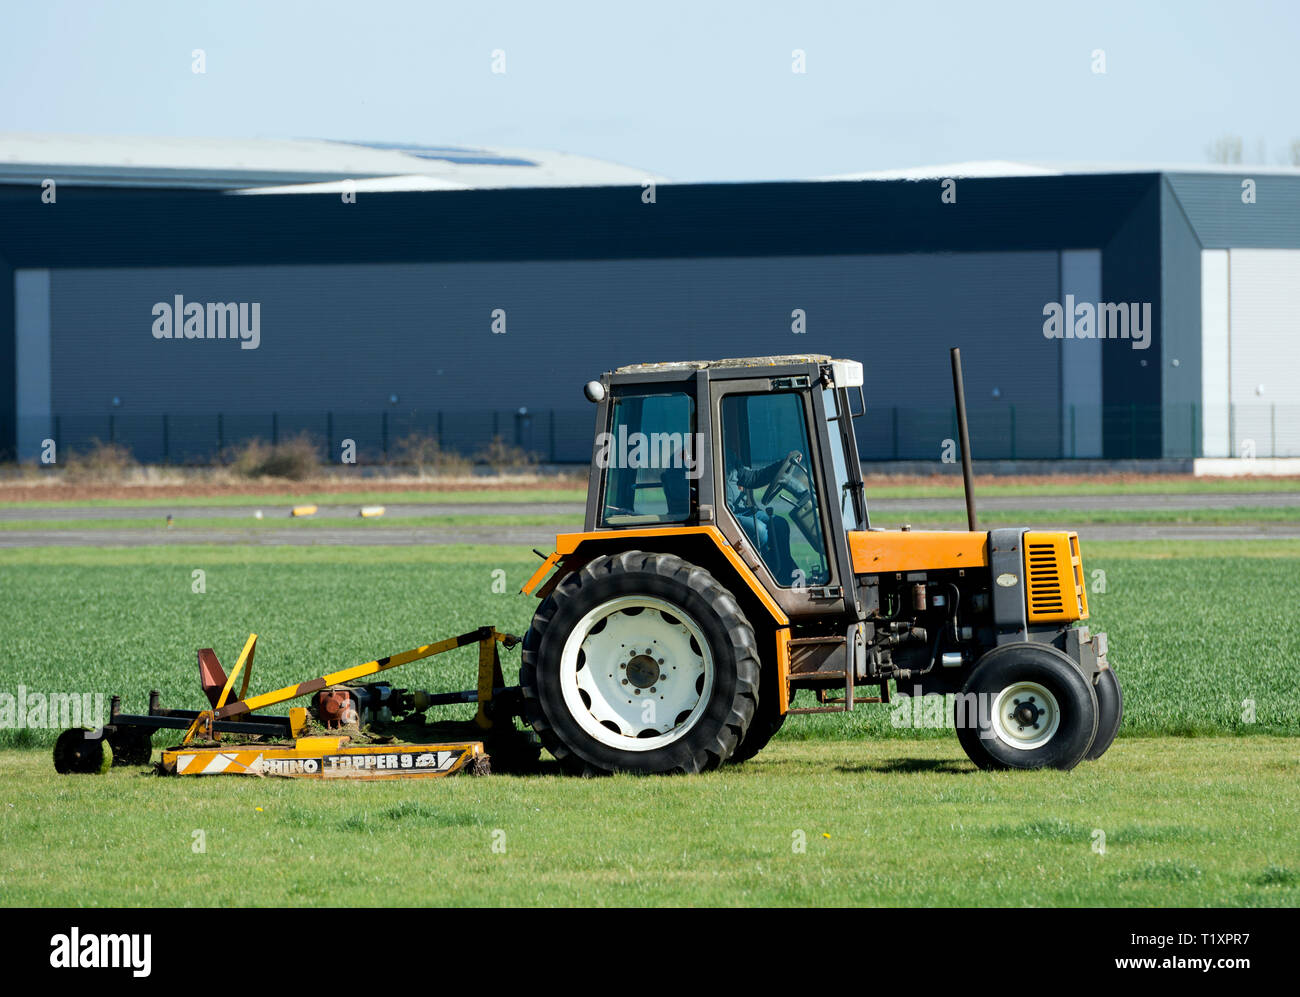 A tractor mowing grass at Wellesbourne Airfield, Warwickshire, UK - Stock Image